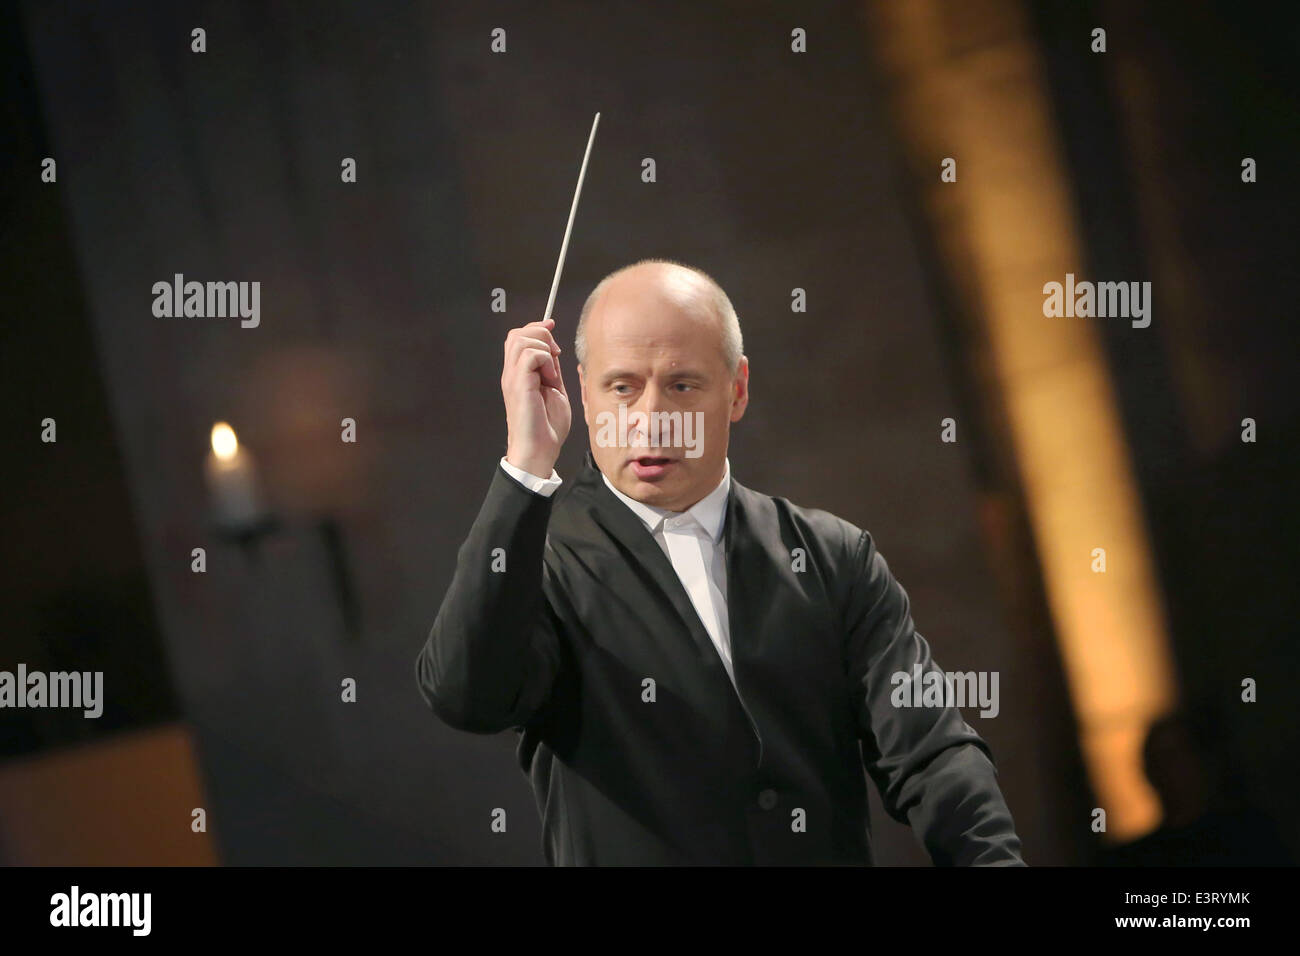 Eltville, Germany. 27th June, 2014. The hr-Sinfonieorchester radio orchestra of the public broadcasting network - Stock Image